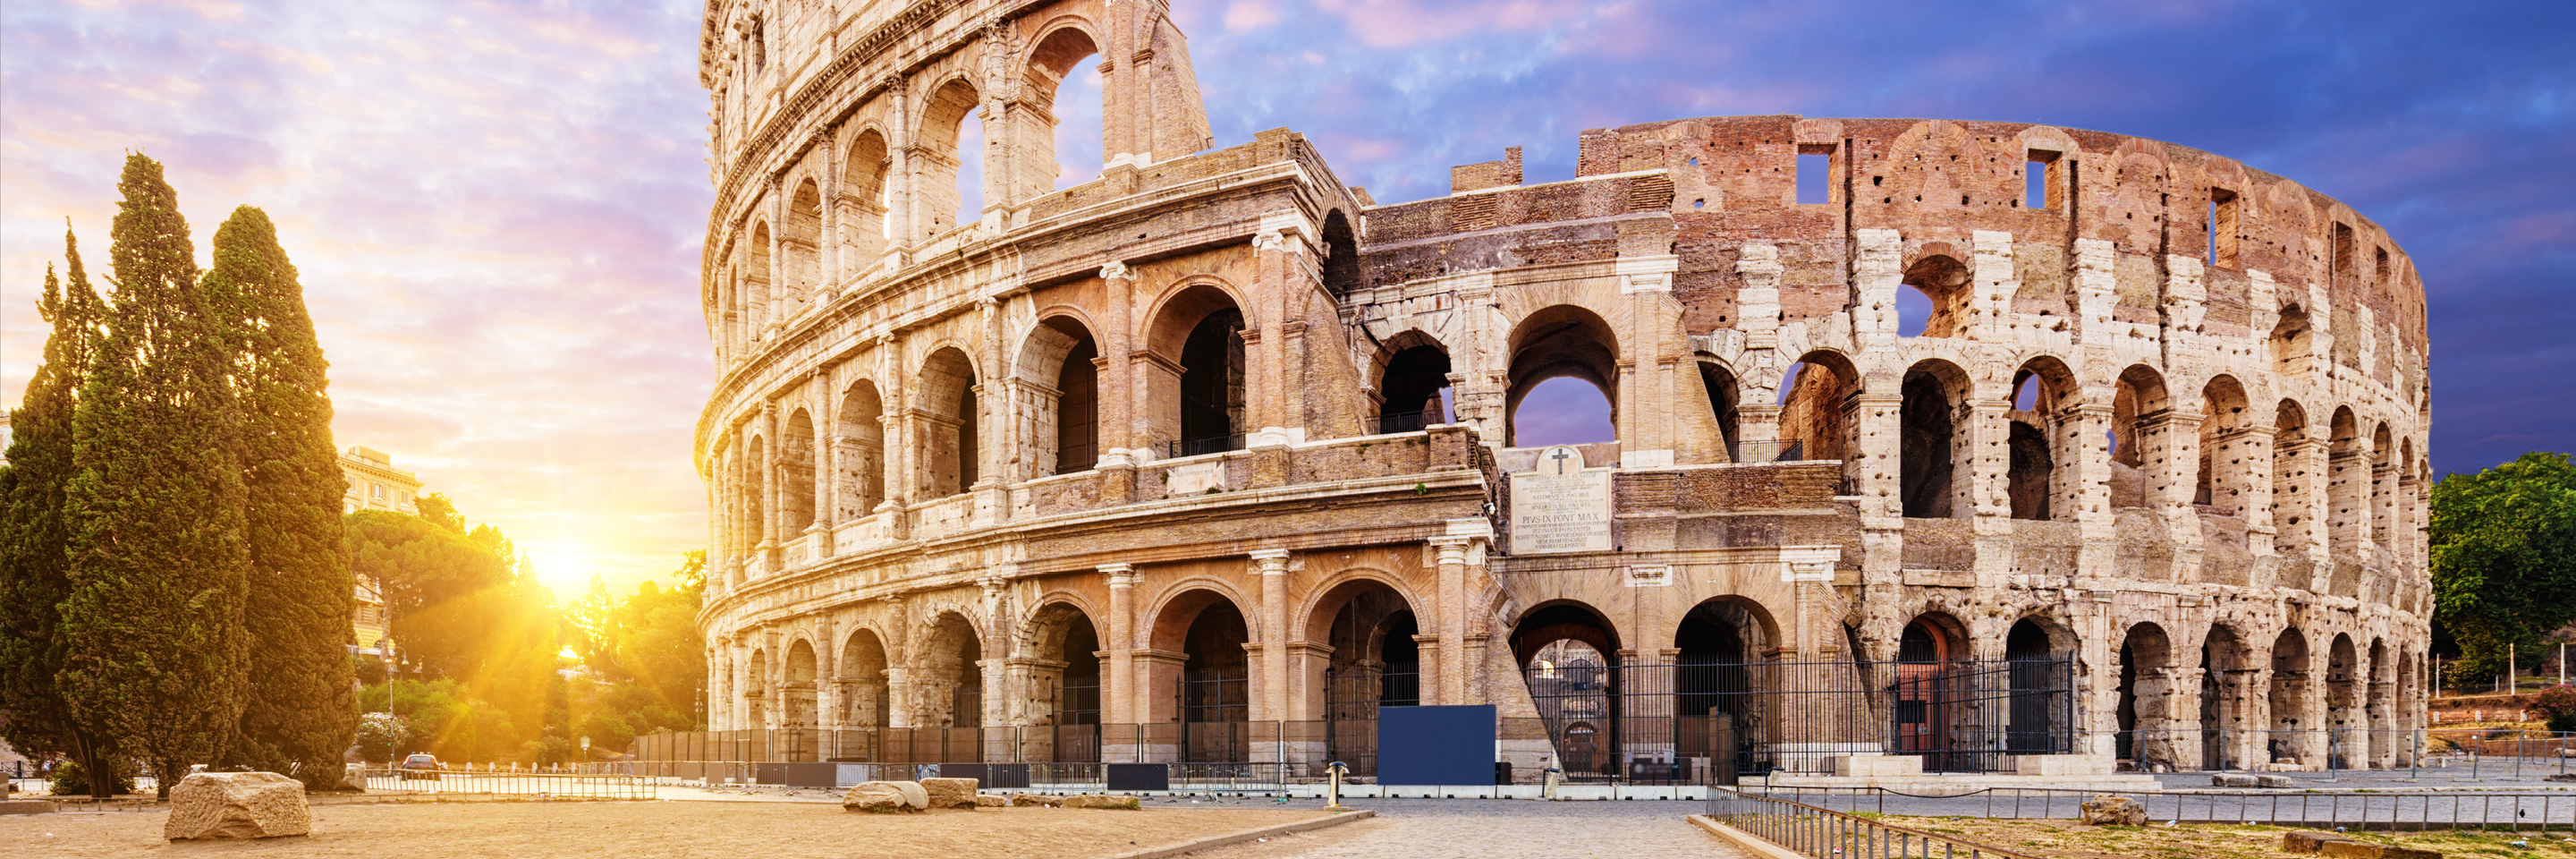 Burgundy & Provence with 2 Nights in Paris, 3 Nights in   Venice & 3 Nights in Rome (Northbound)